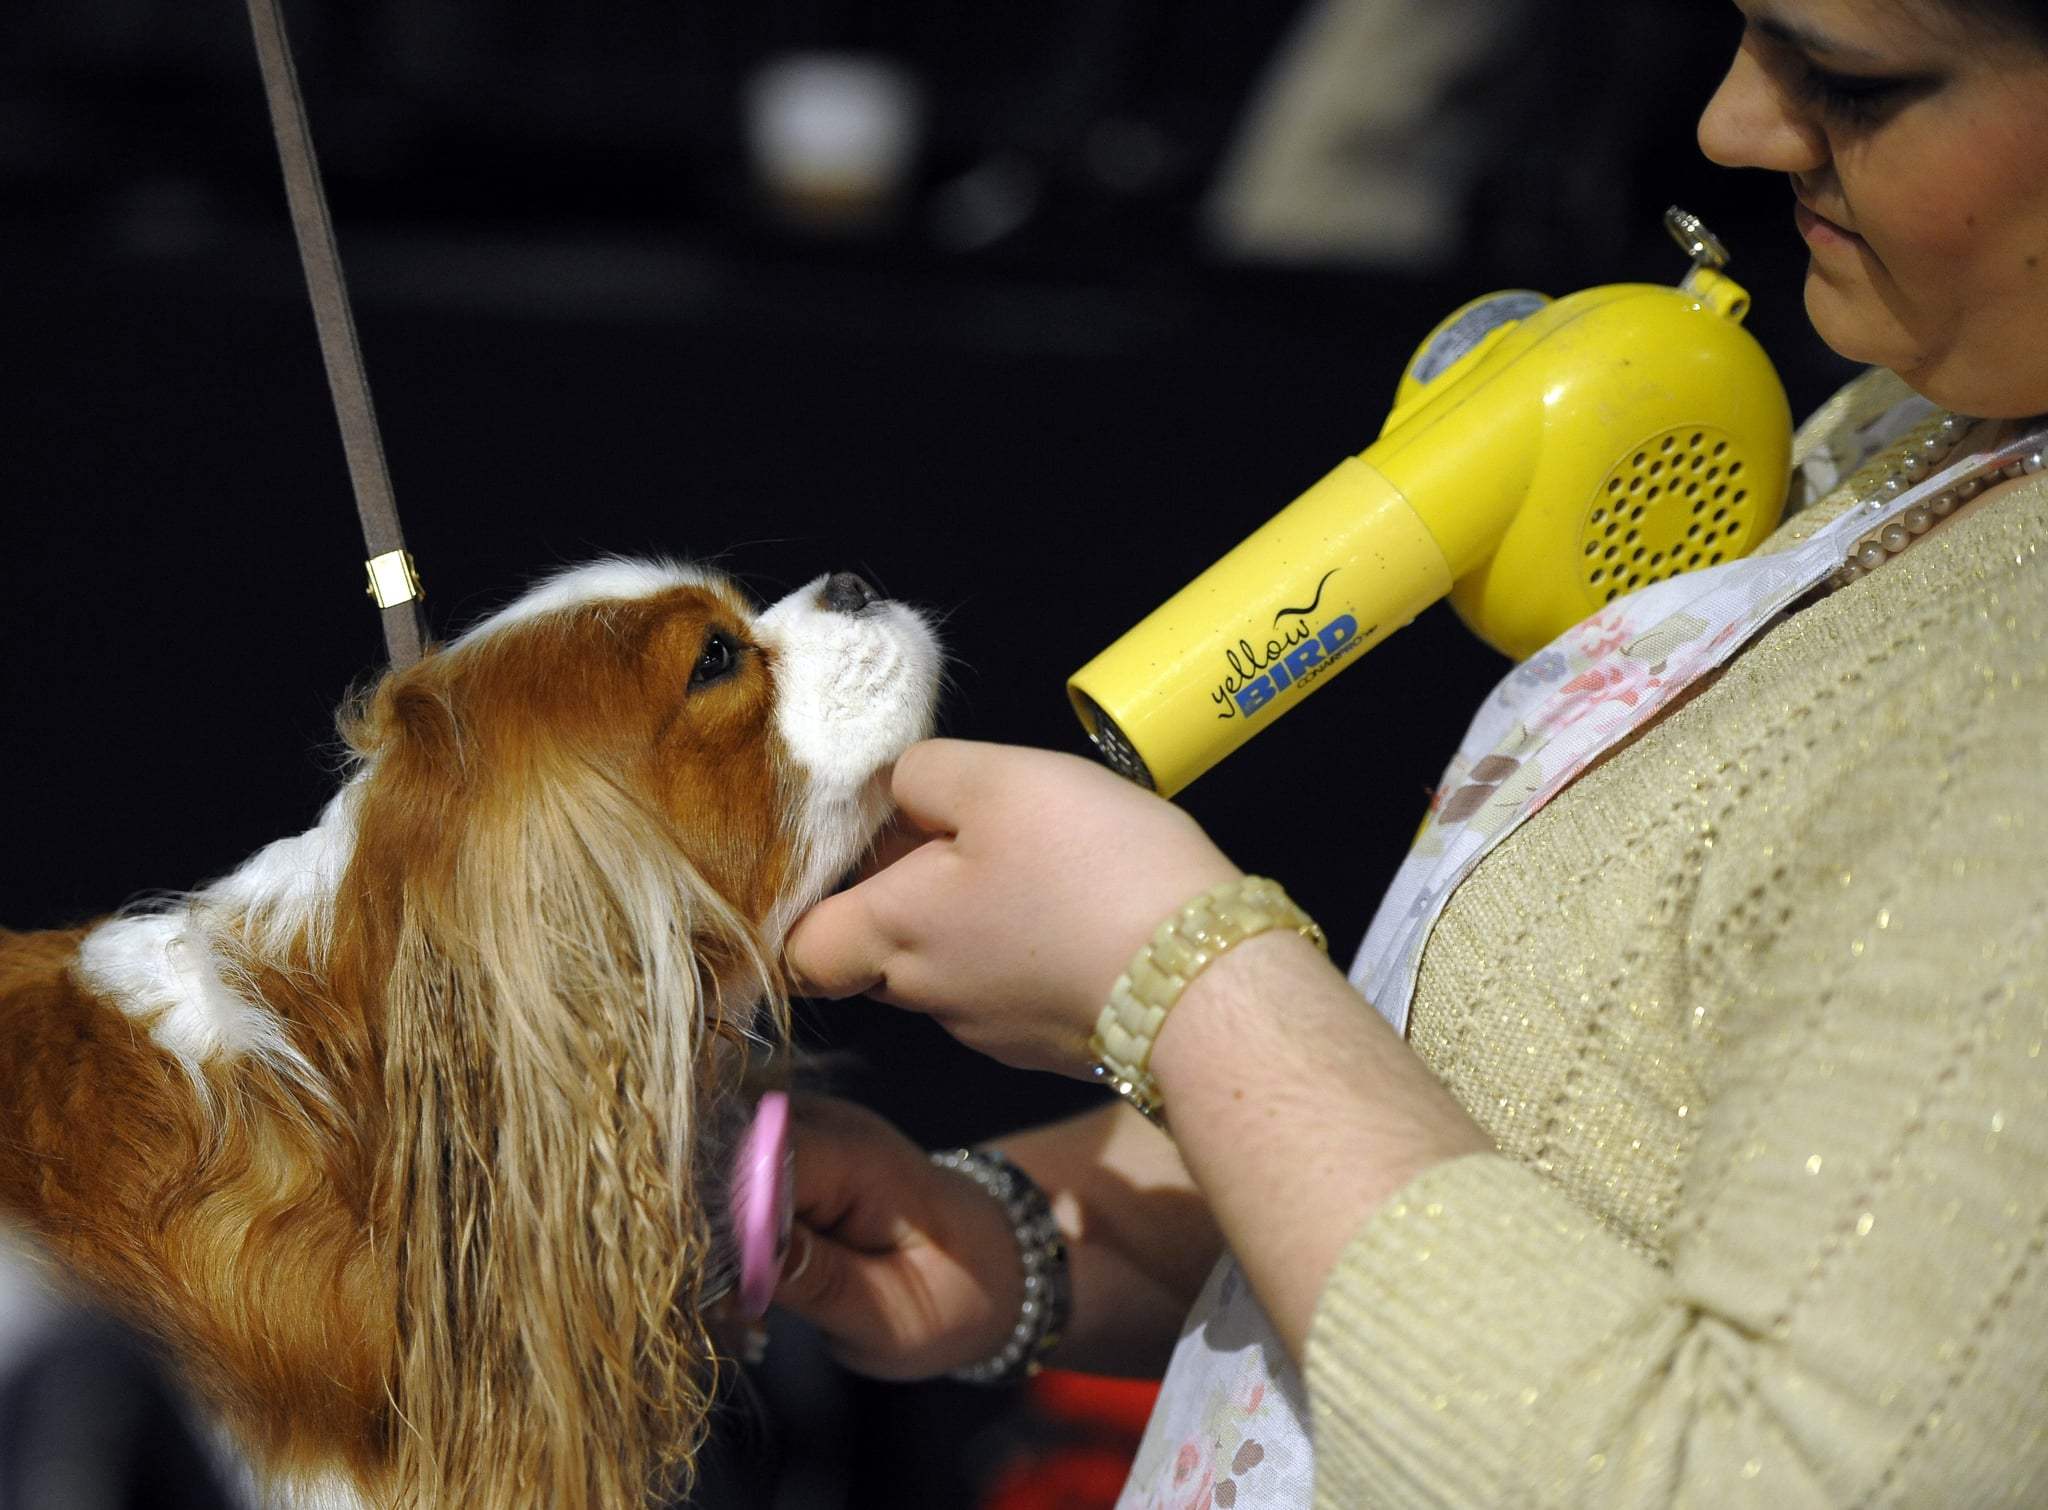 Drying off backstage at the Westminster Kennel Club Dog Show.